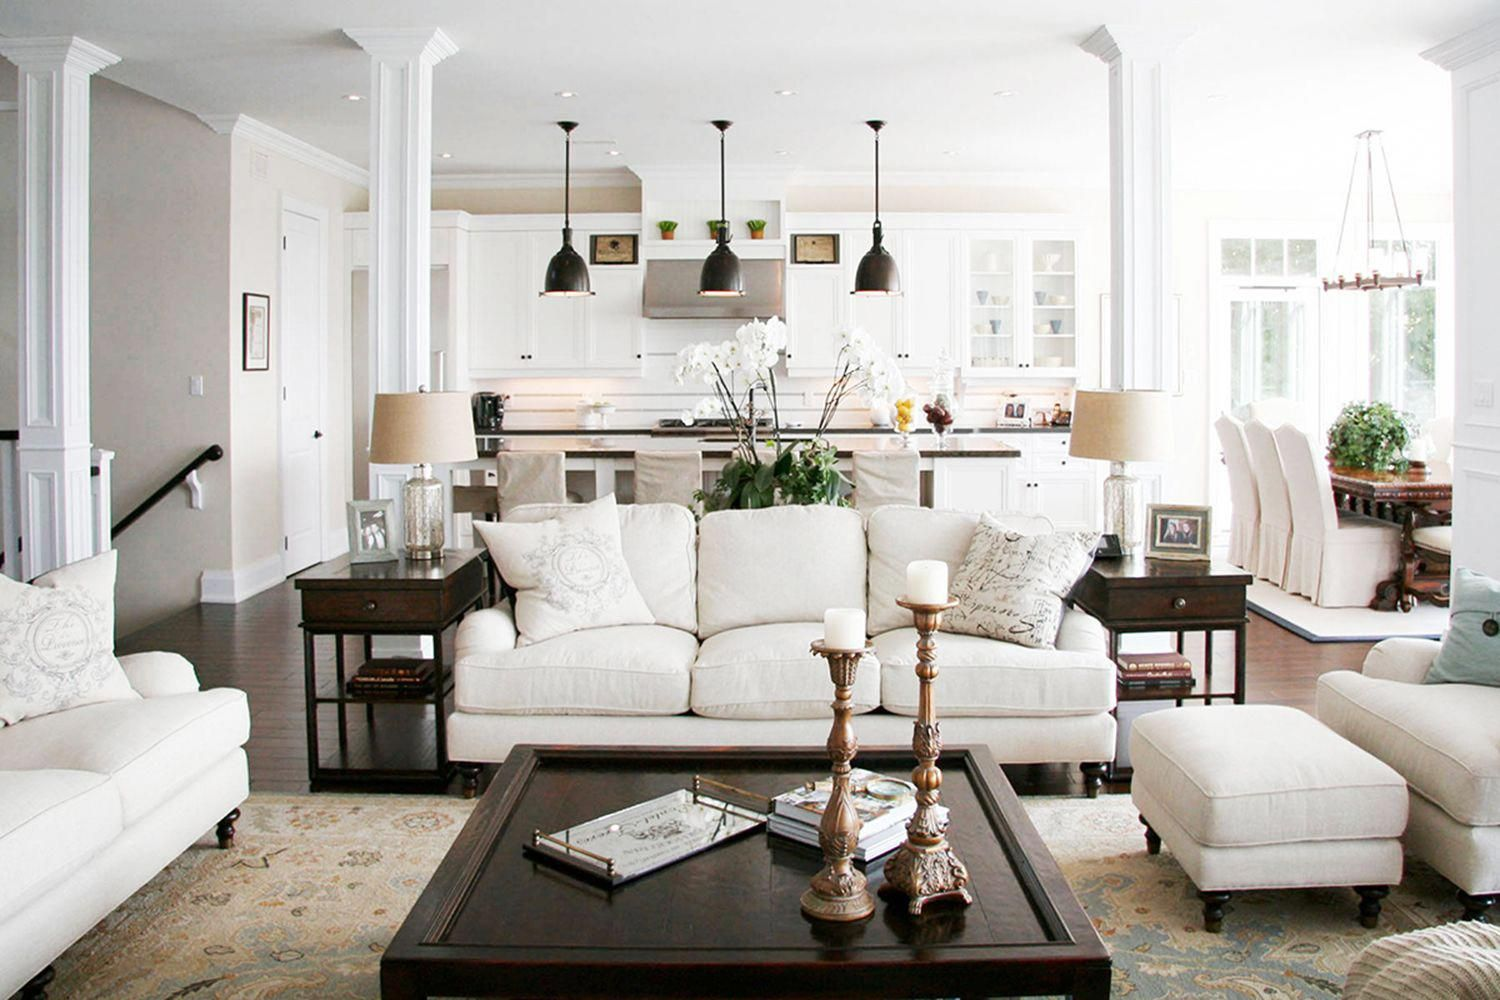 The Open Floor Plan Has Been A Part Of The Interior Design Vernacula Traditional Design Living Room Open Concept Living Room Open Concept Kitchen Living Room